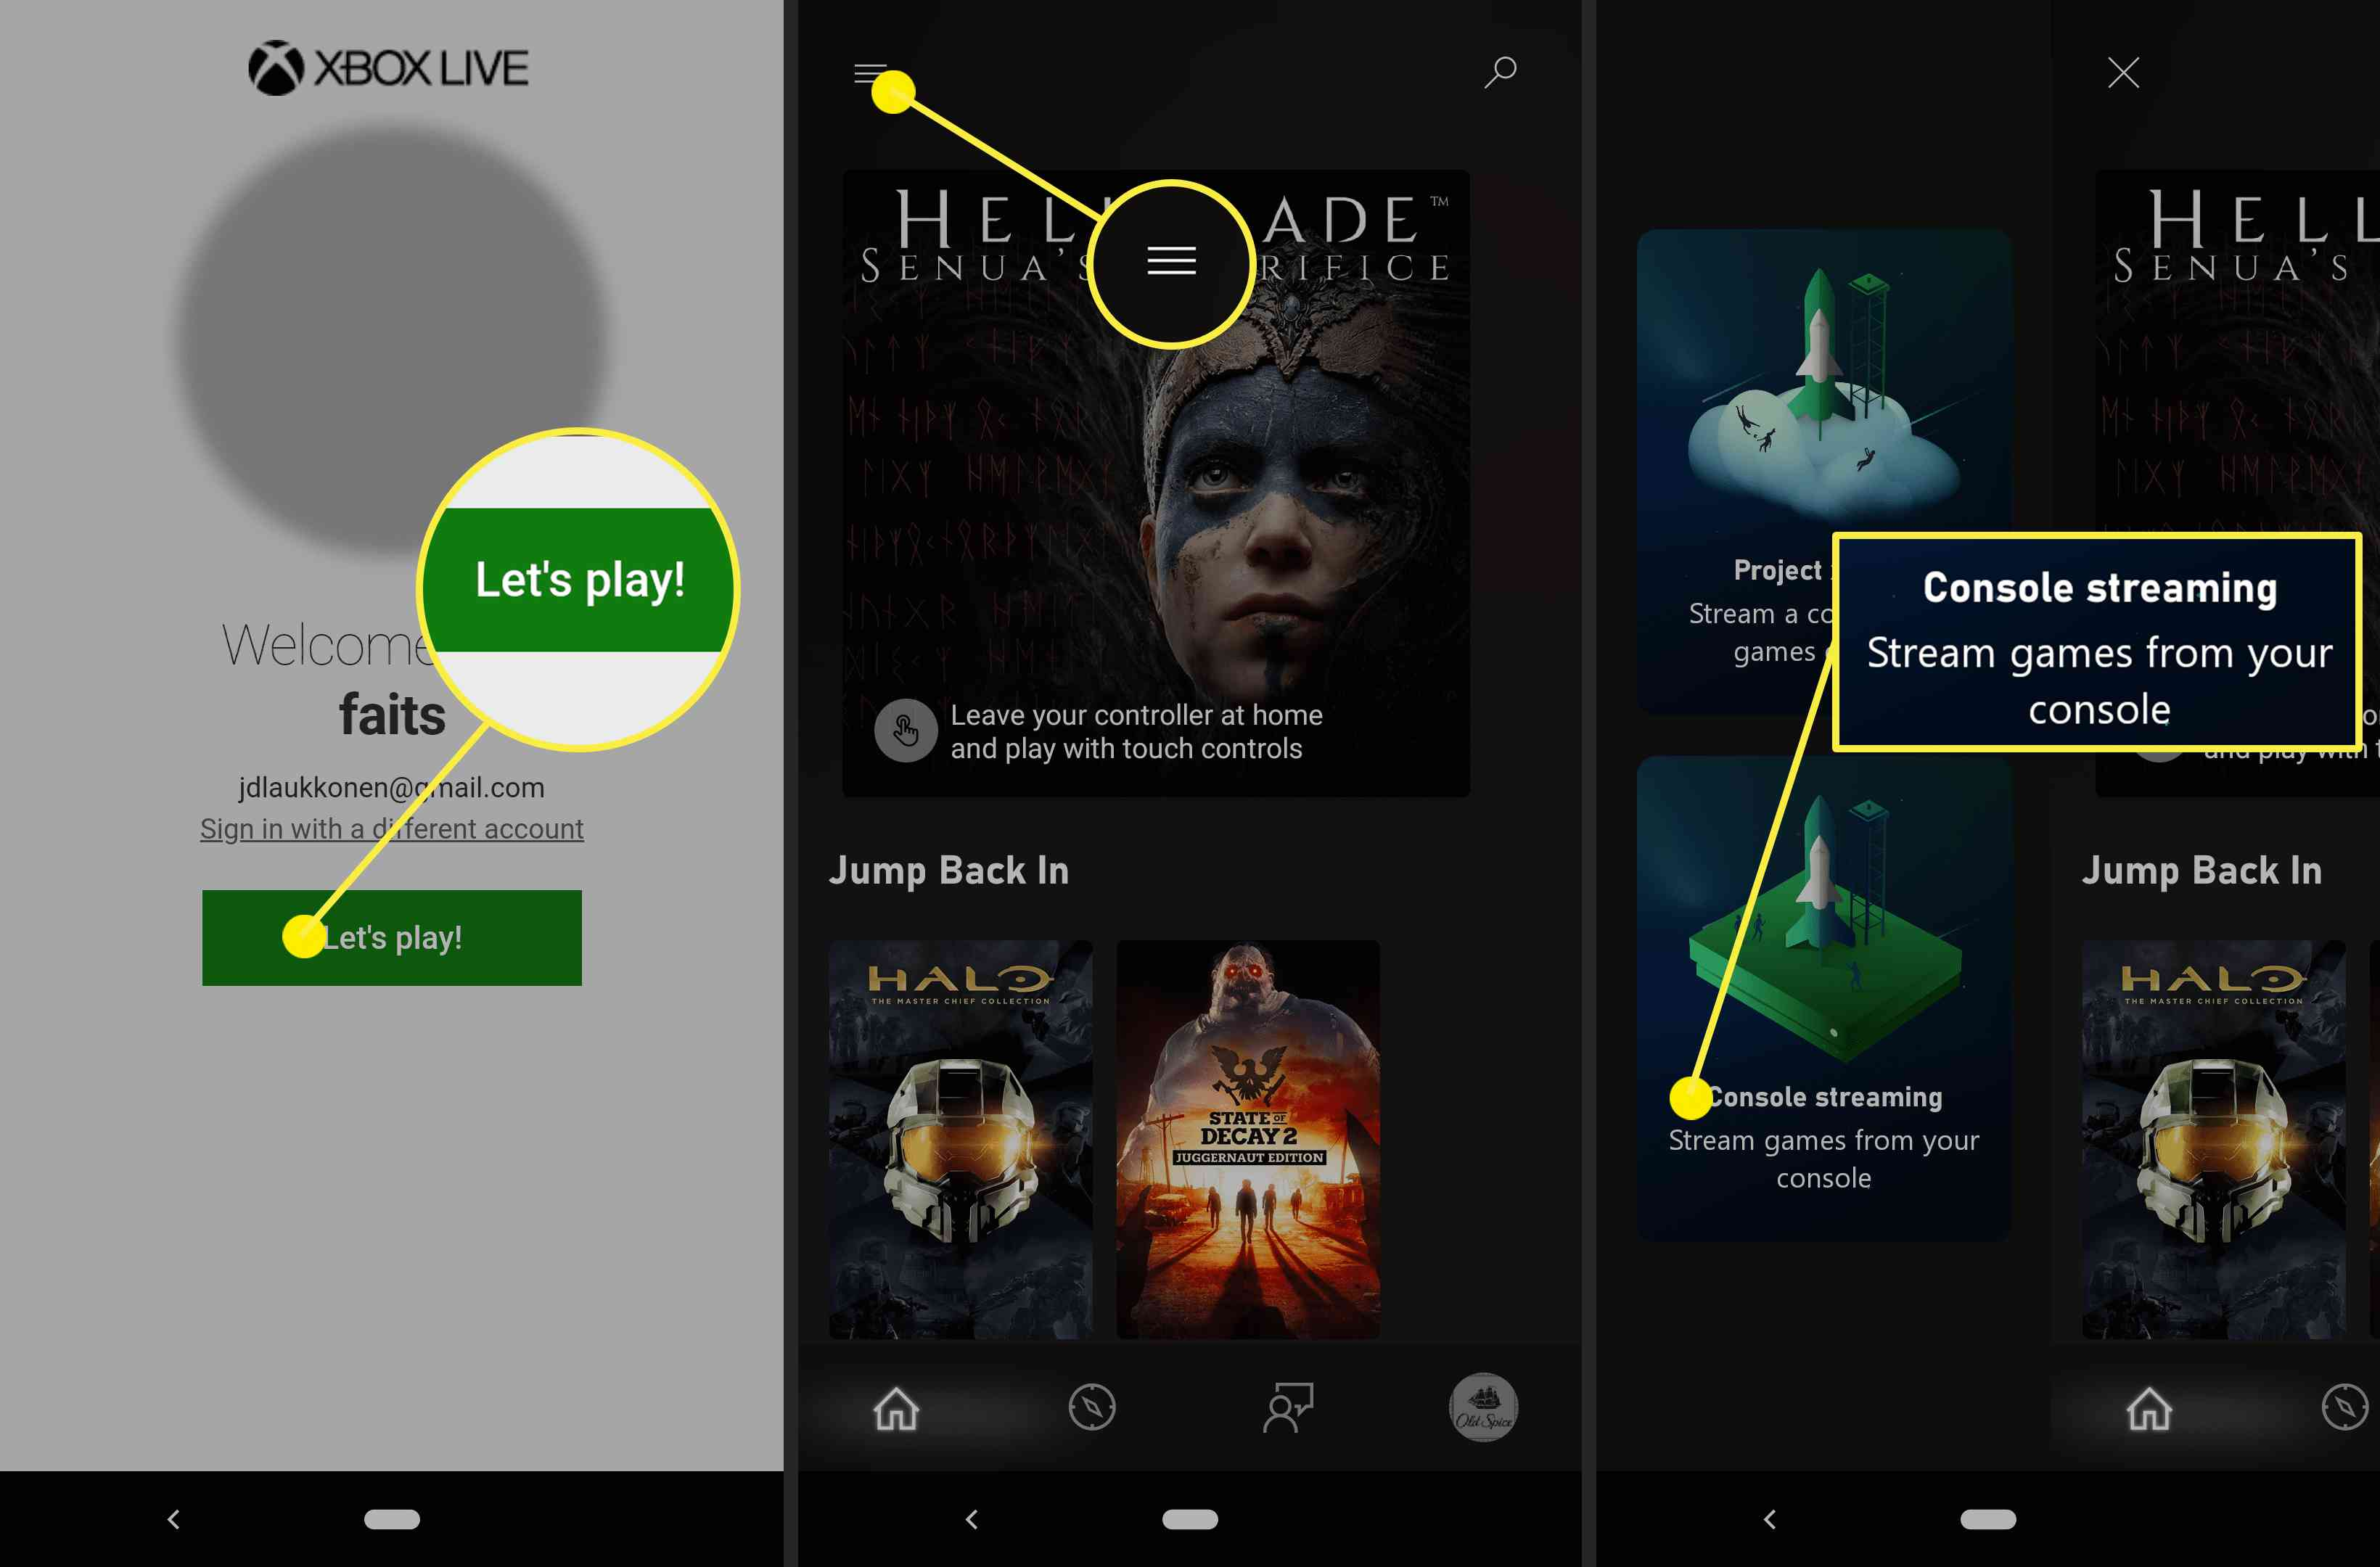 Screenshots showing how to get to the Console Streaming option on the Xbox app.